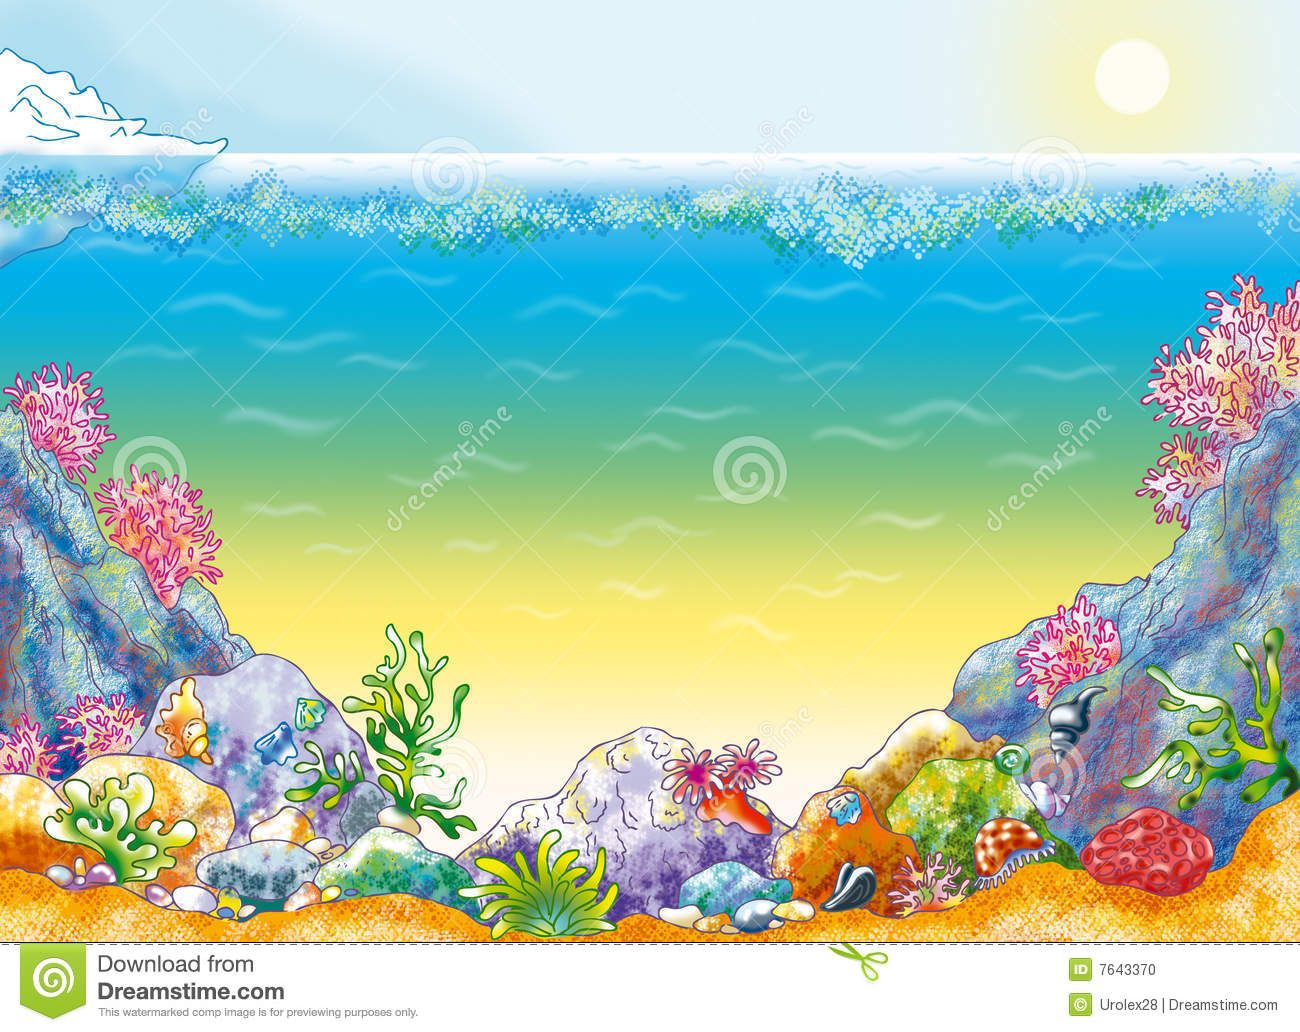 Clipart ocean floor clip art royalty free stock Ocean Floor Clip Art | Ocean Floor Clipart Ocean background with ... clip art royalty free stock